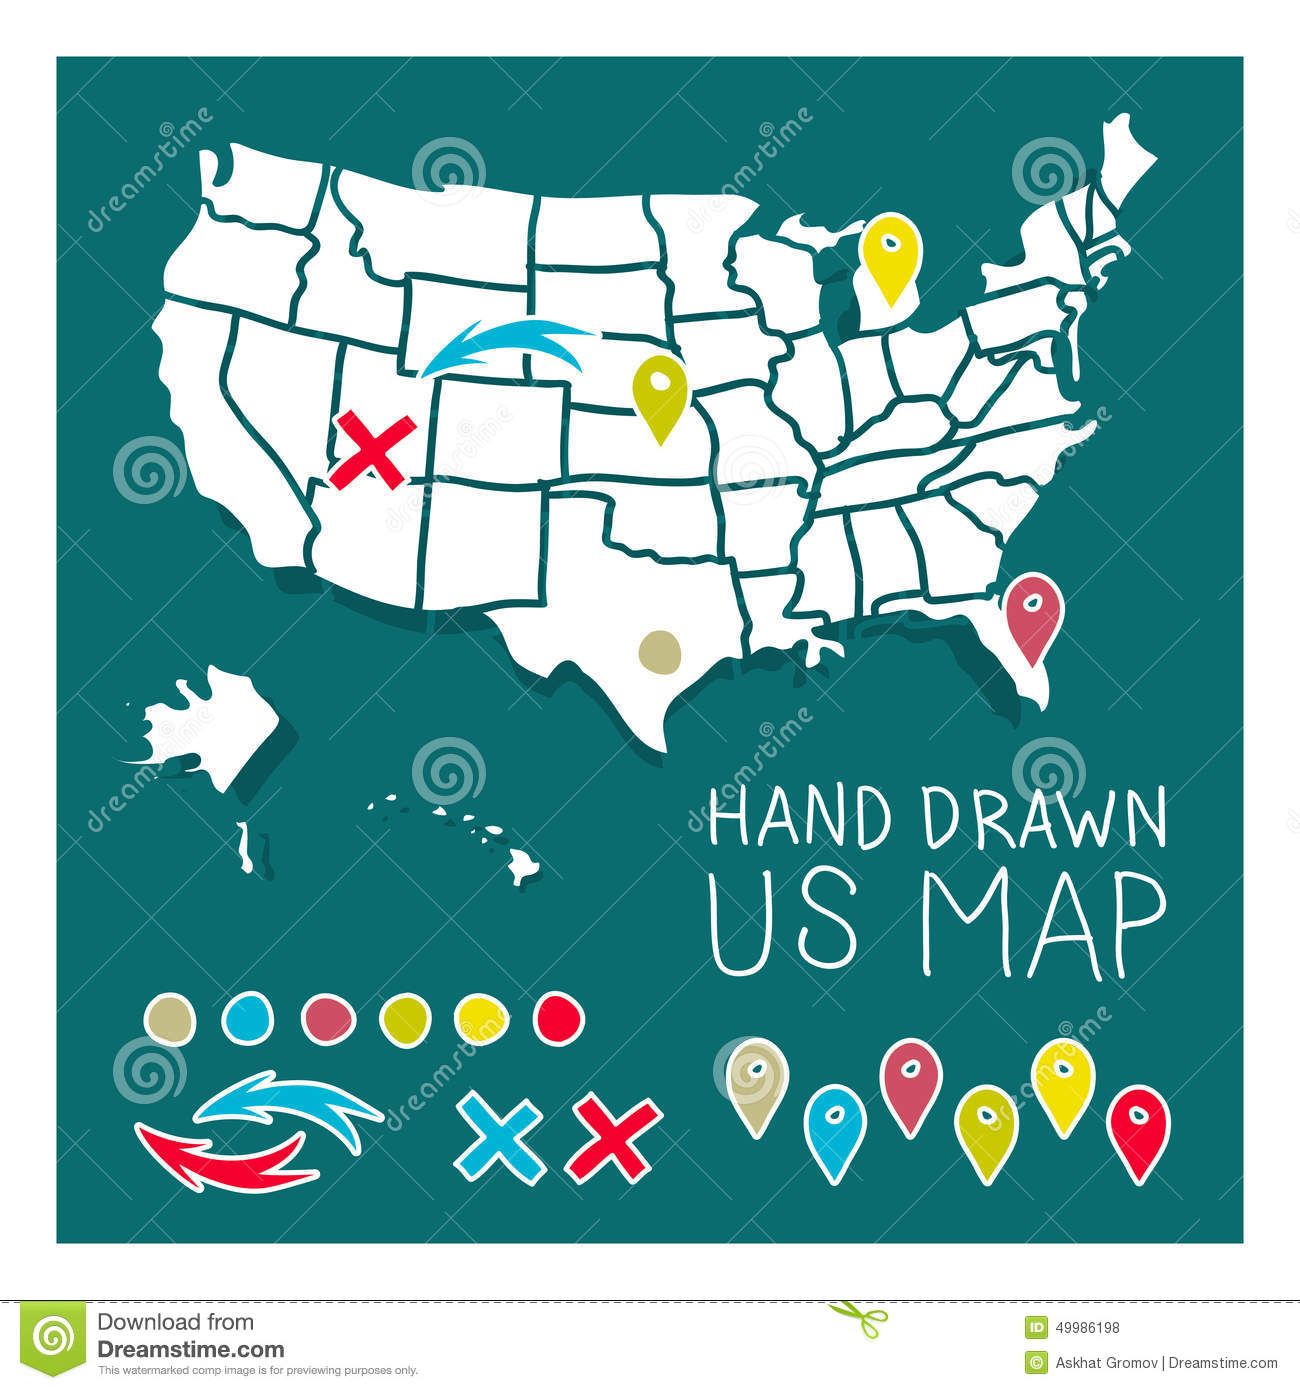 Hand Drawn US Map With Pins Illustration Image 49986198 – Travel Map Of Us